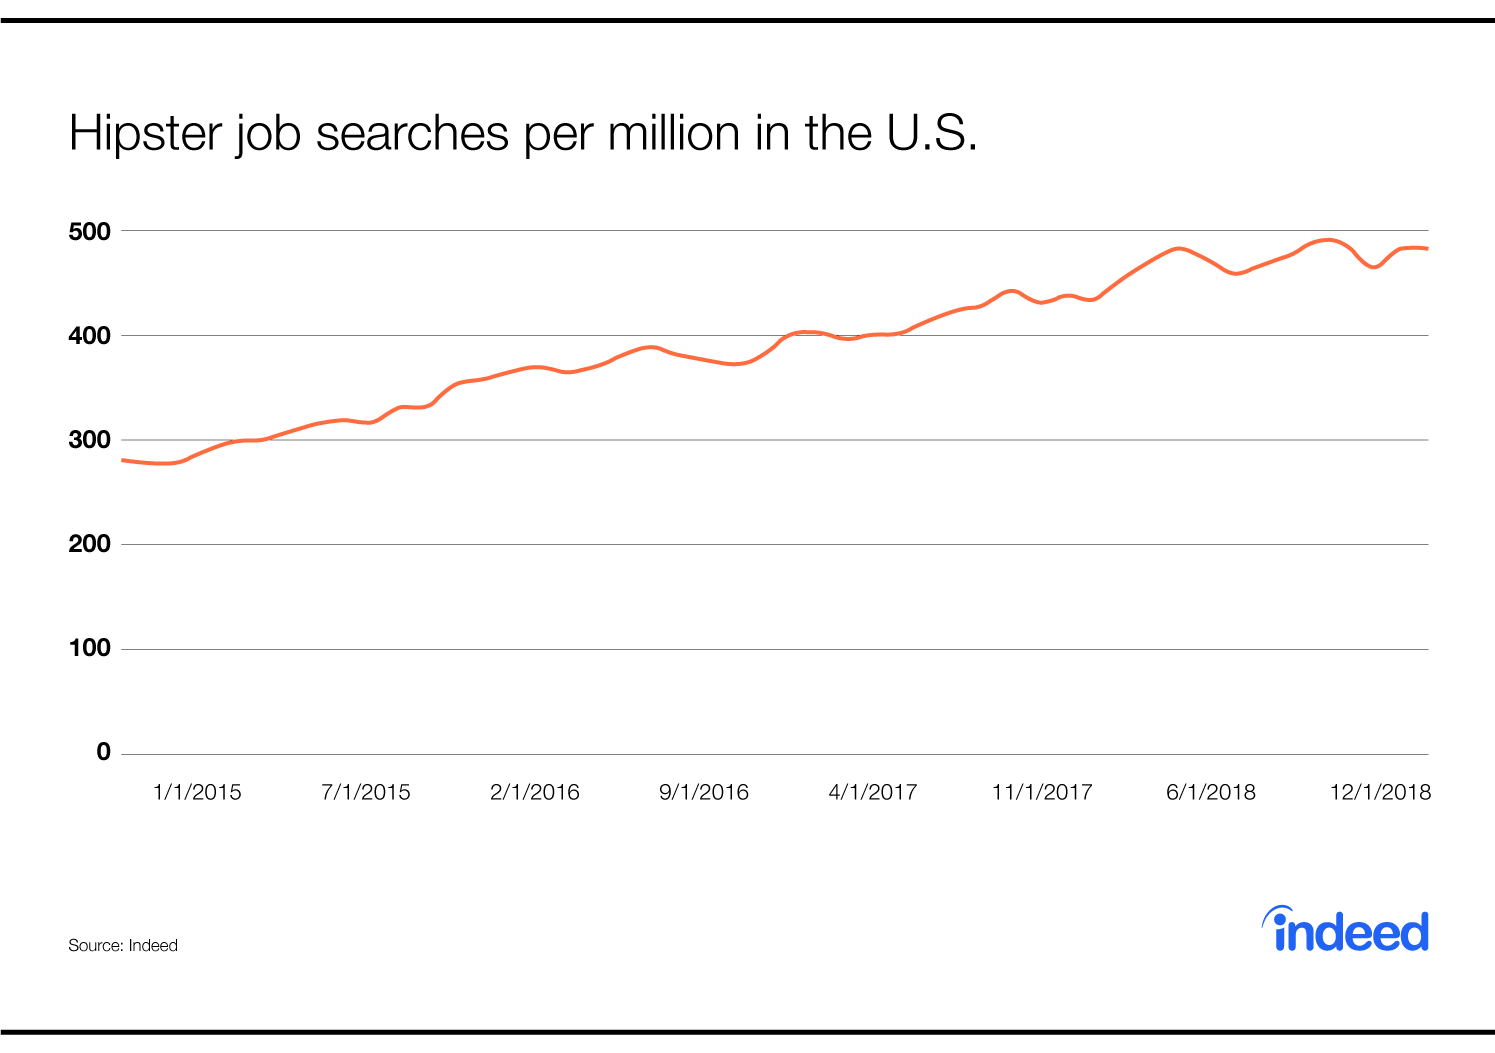 Hipster jobs searches per million in the U.S.